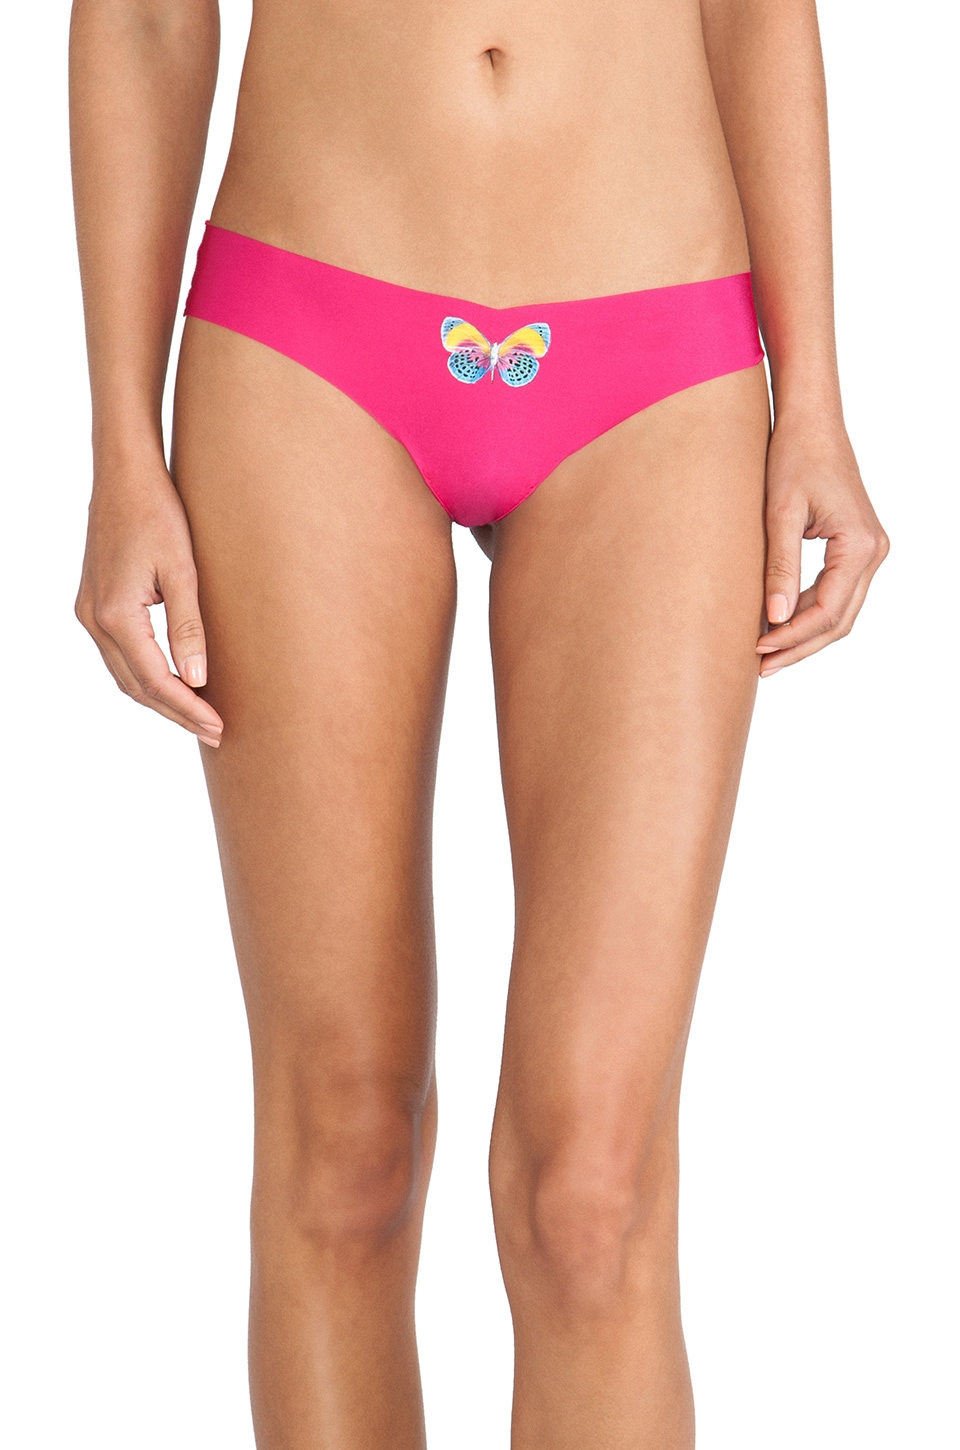 Commando Thong in Multi Butterfly & Hot Pink